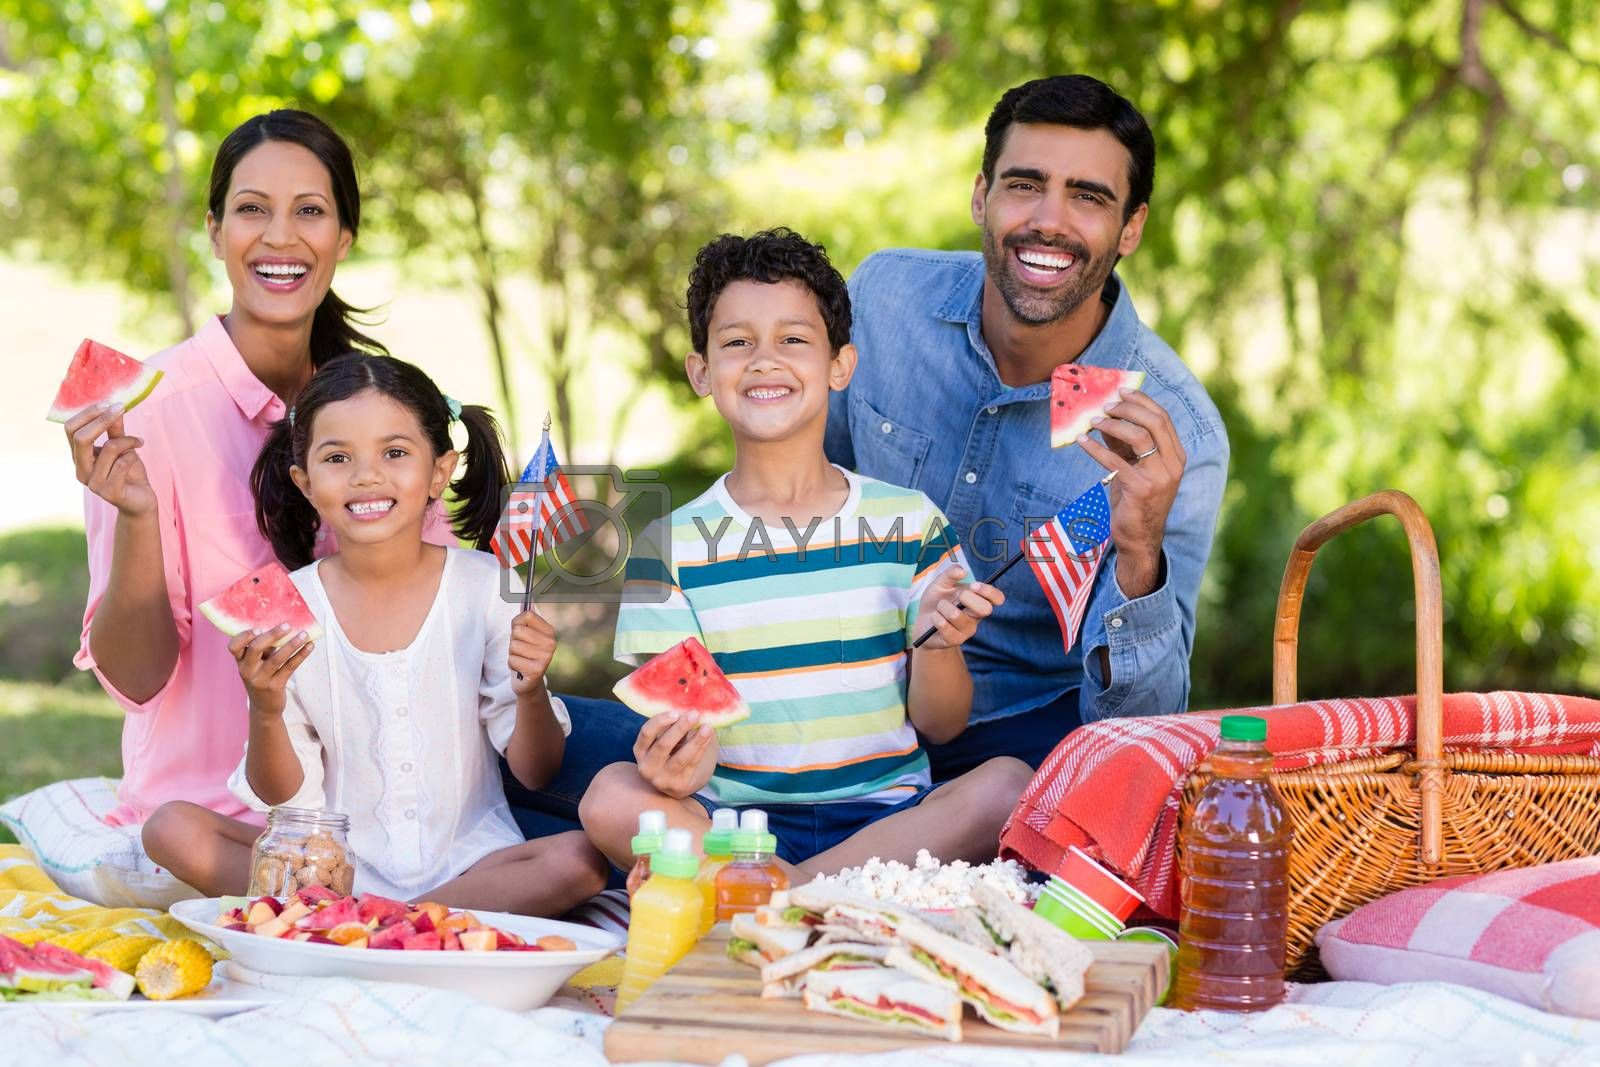 Portrait of family having breakfast in a park on a sunny day